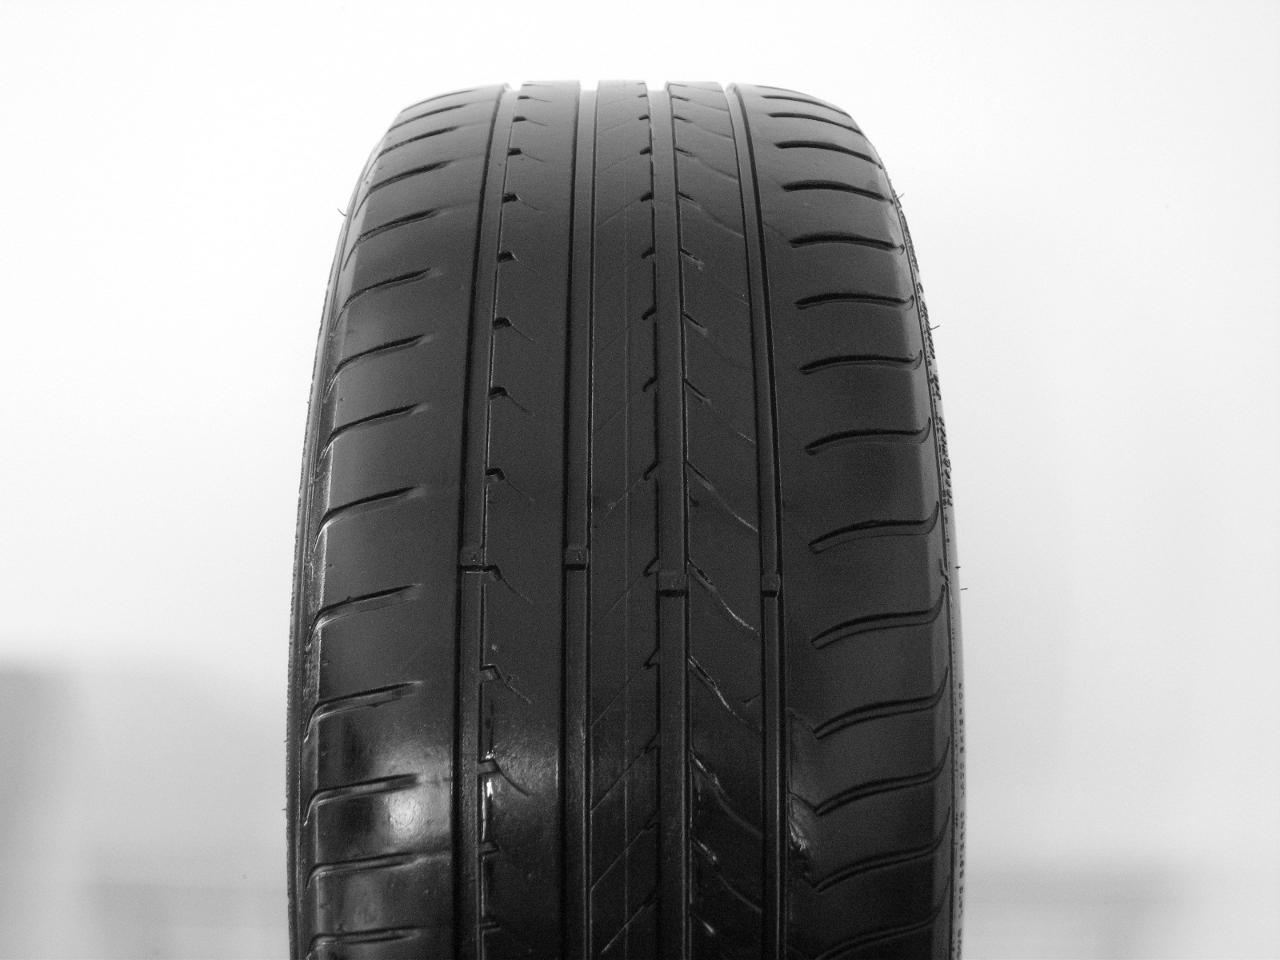 Použité-Pneu-Bazar - 225/45 R18 GOODYEAR EFFICIENT GRIP (RFT) -kusovka-rezerva 3mm